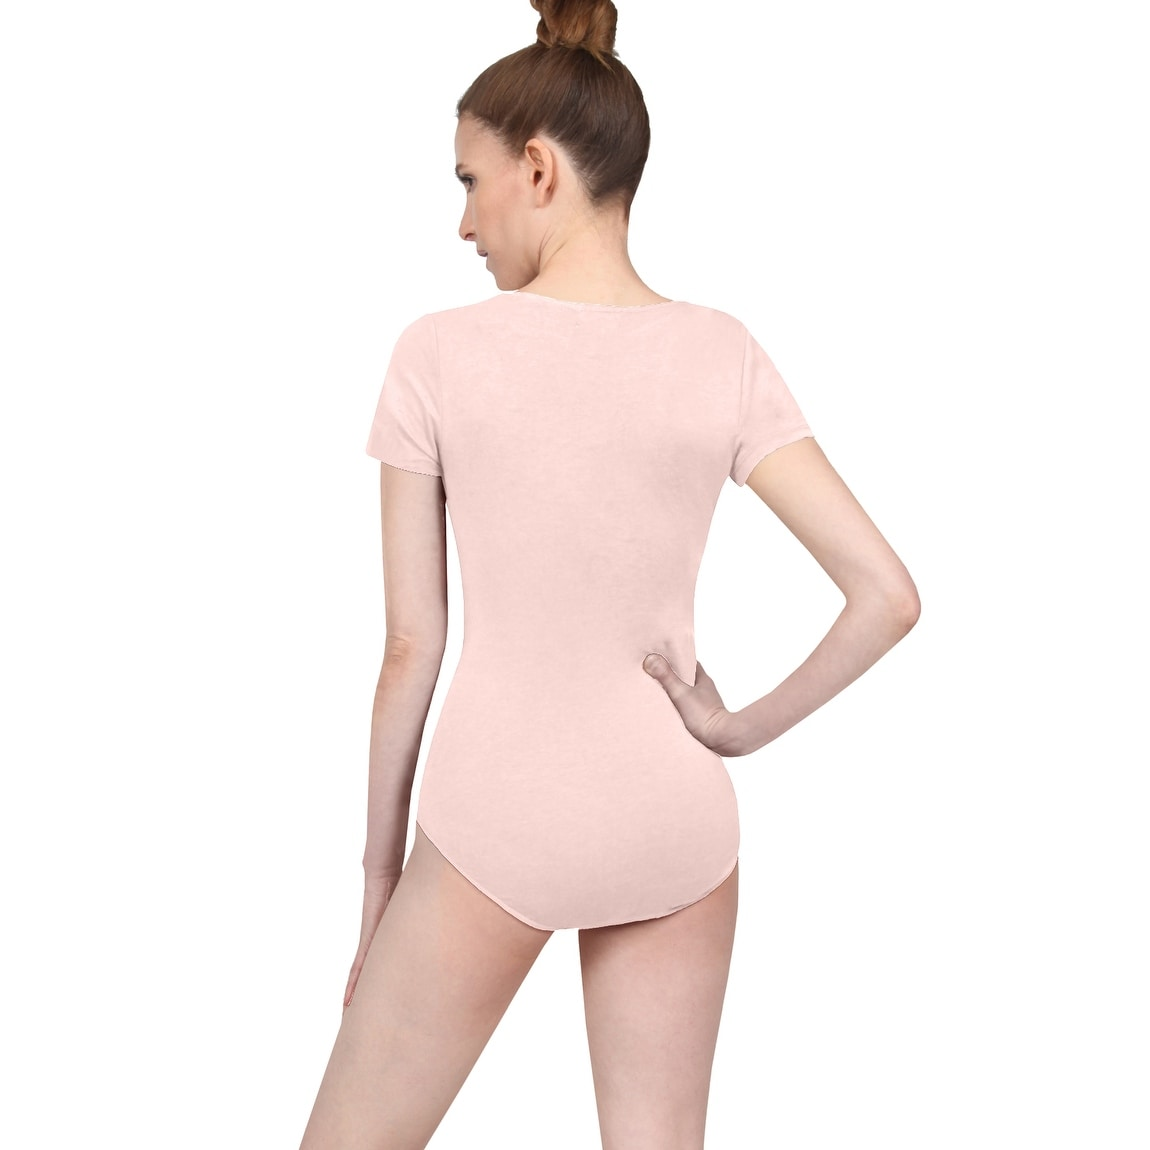 940e1ef4 Shop NE PEOPLE Womens Sexy Fitted Stretchy Short Sleeve Lace Up Strap Snap  Button Bodysuit - Free Shipping On Orders Over $45 - Overstock - 21906167